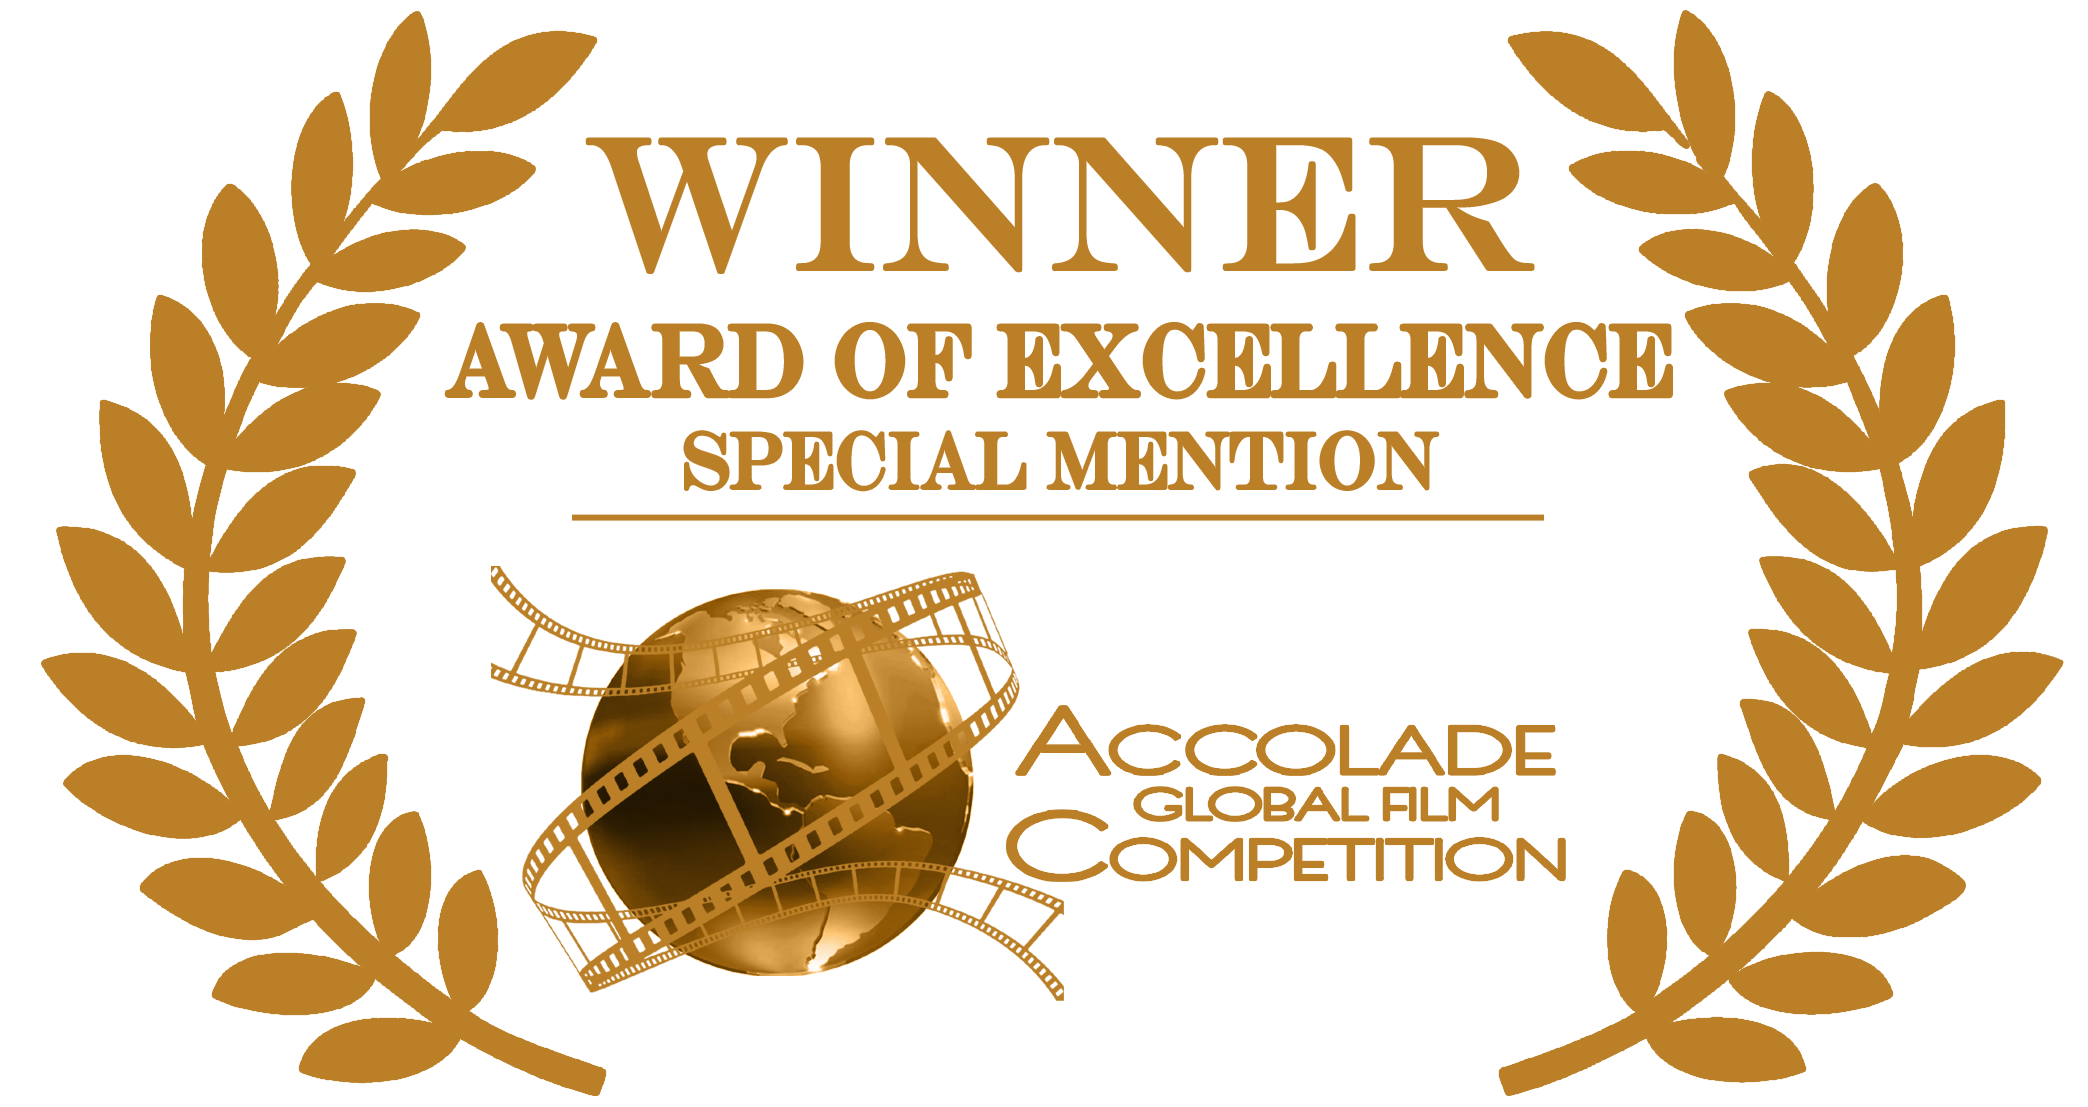 Winner Award of Excellence Special Mention